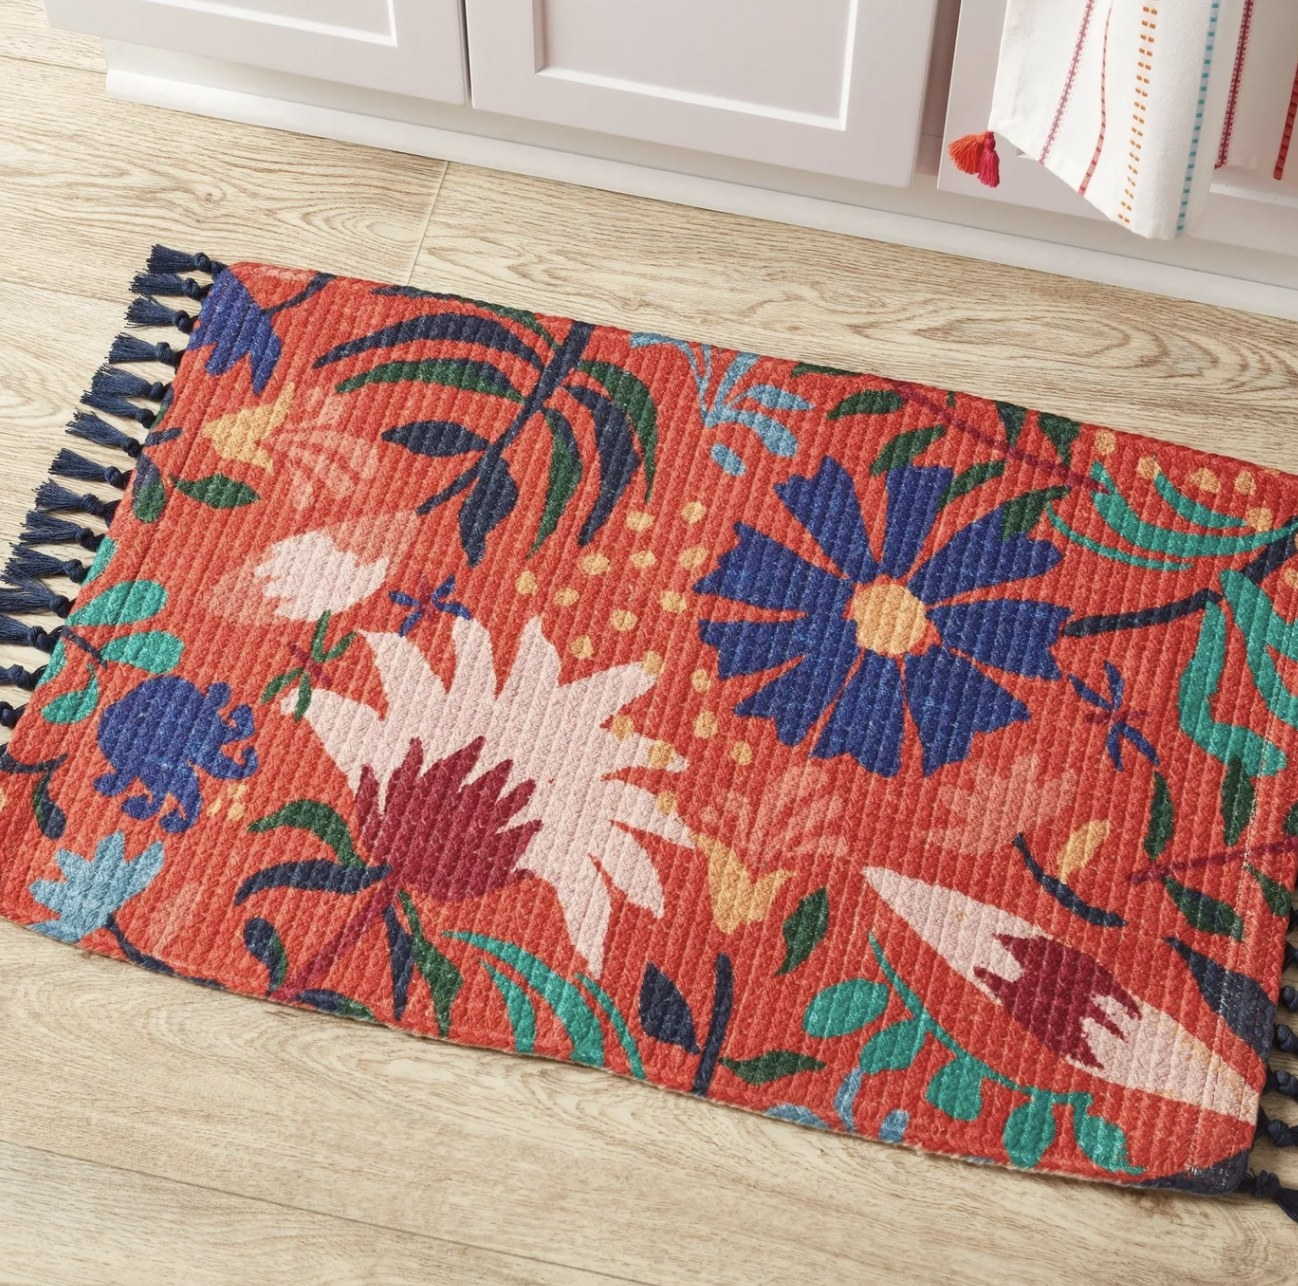 a floral braided rug with navy tassles